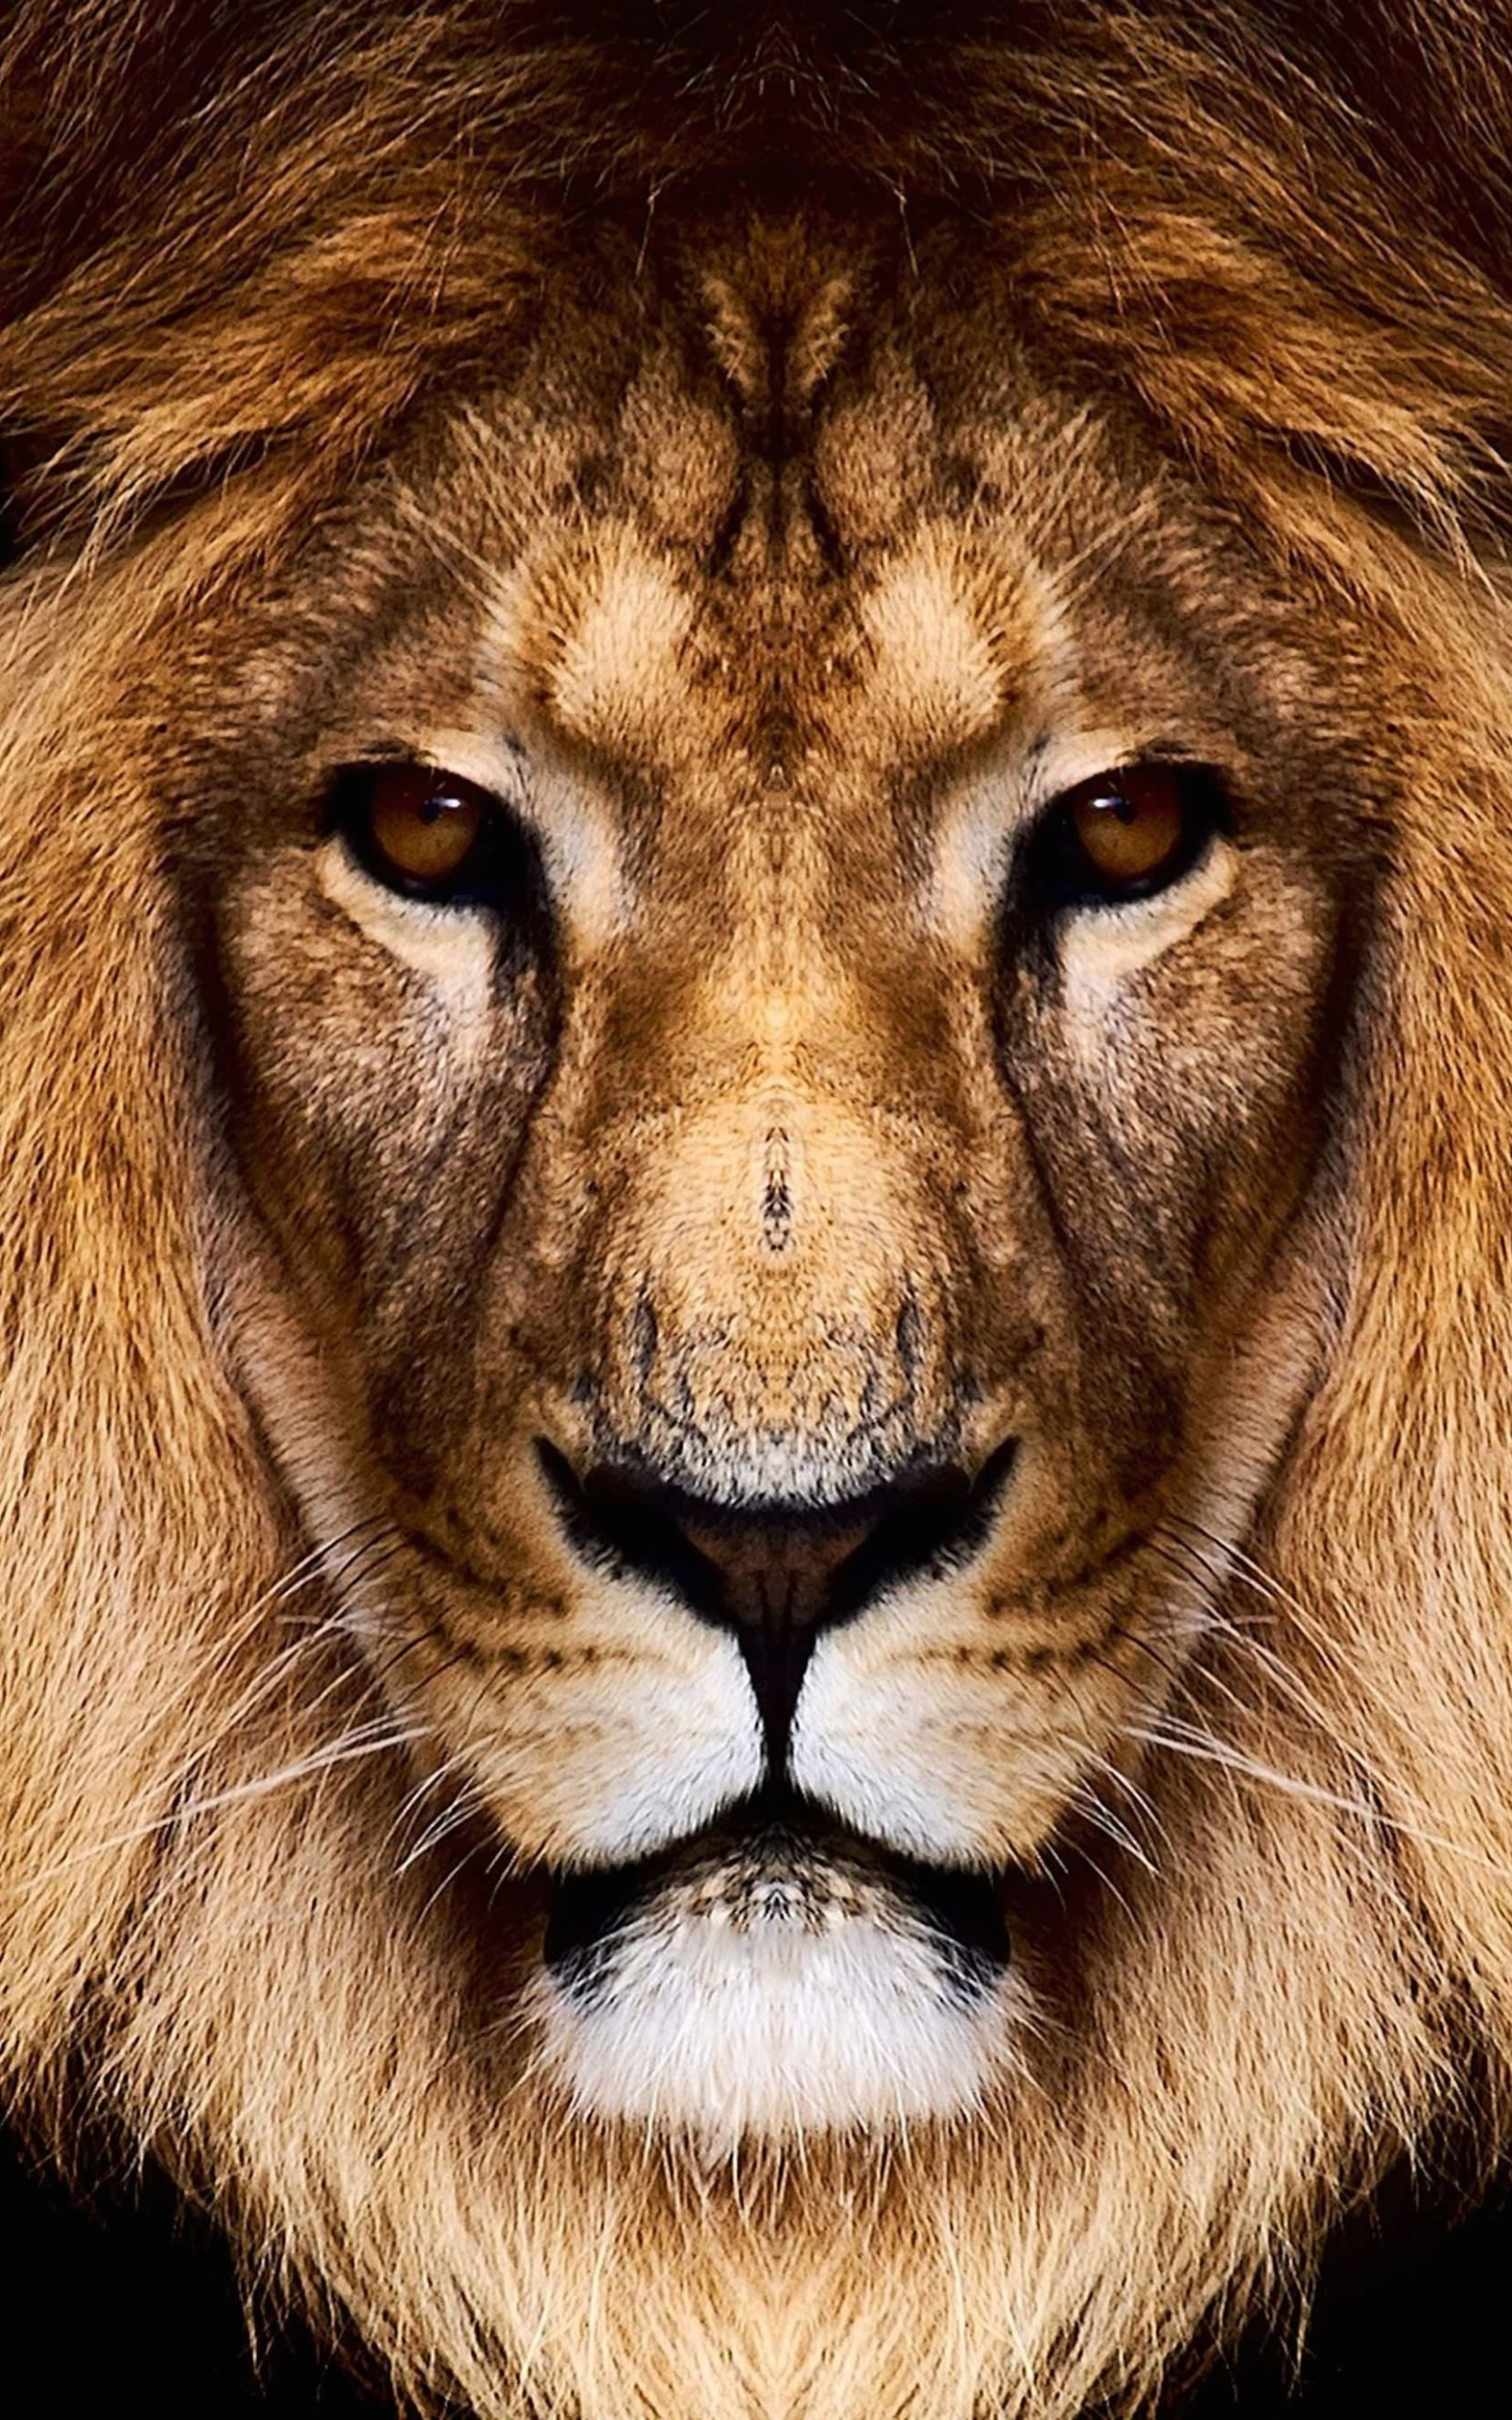 King Lion Wallpaper for Amazon Kindle Fire HDX 8.9